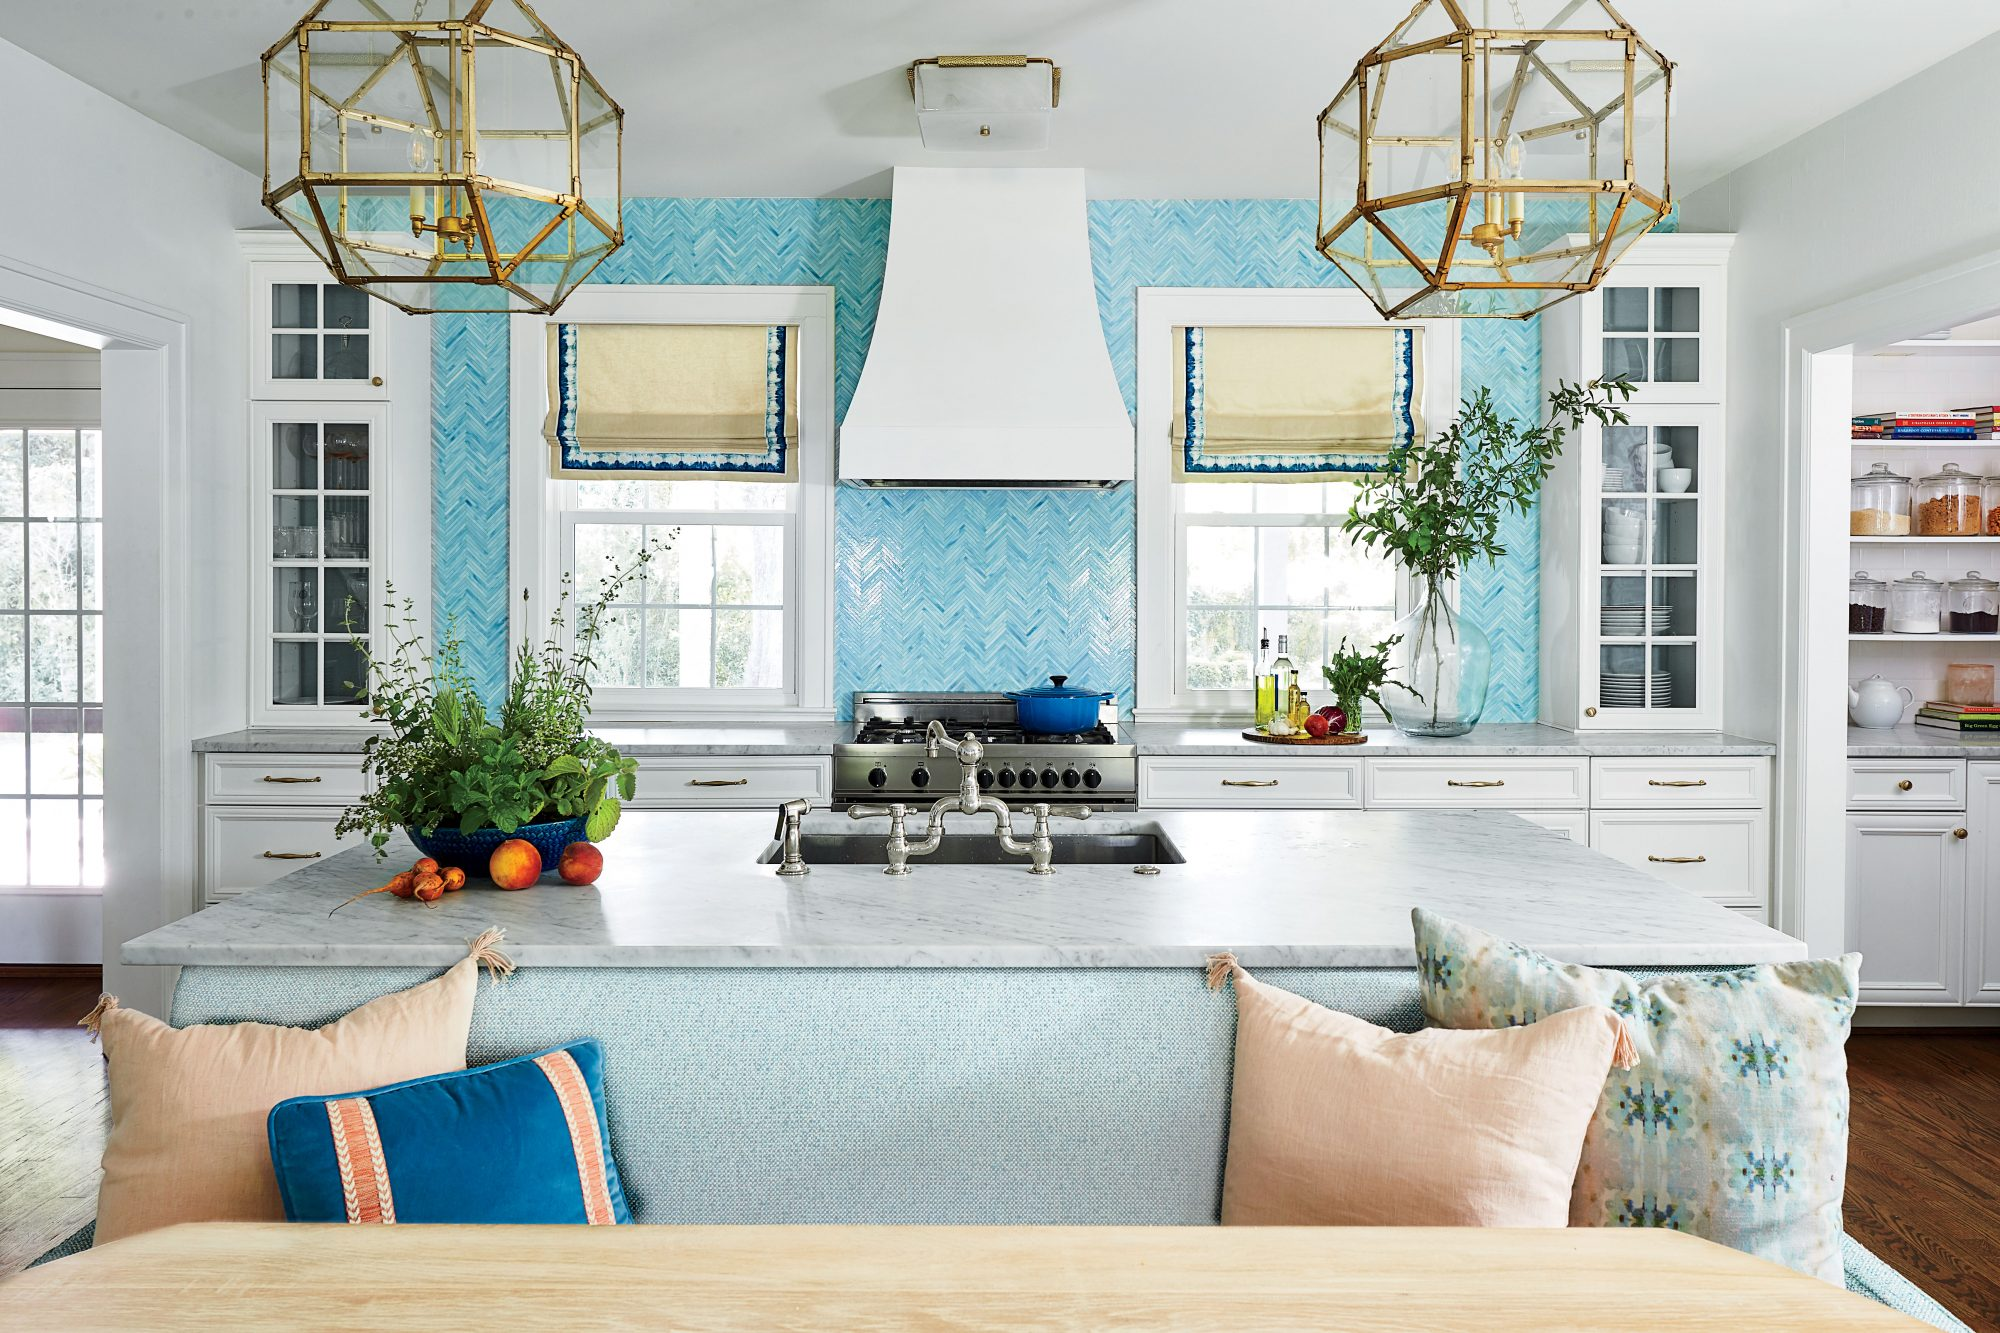 Lindsey Cheek Wilmington, NC Home White Kitchen with Teal Tile and Banquet Seating